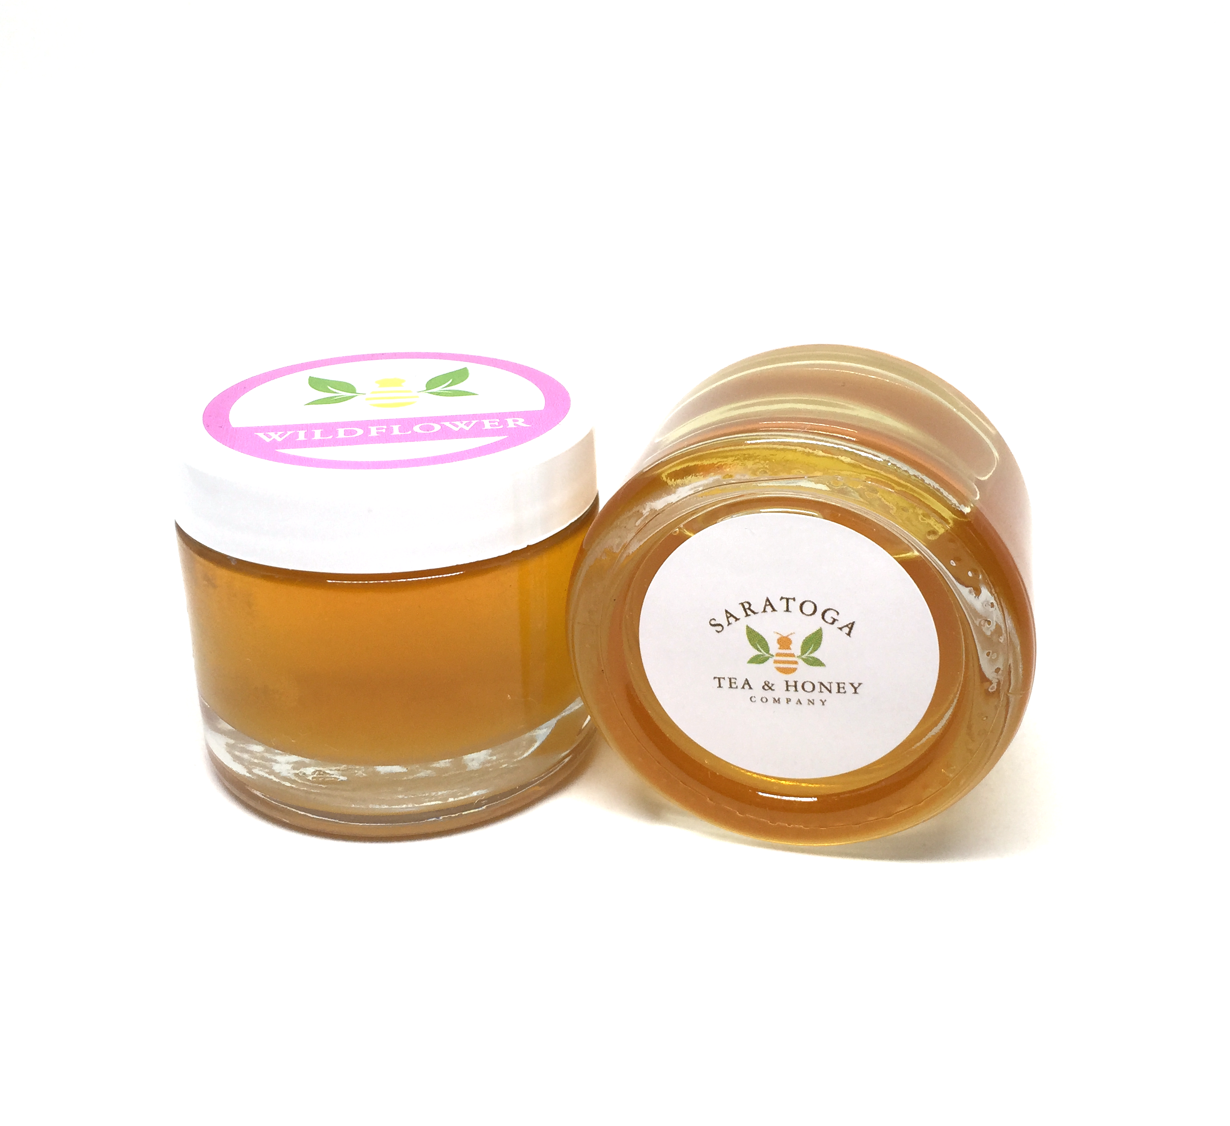 This wildflower honey comes from the beautiful spring wildflowers and budding trees located near Saratoga Springs, NY. Wildflower, or poly-floral, honey from this area is teeming with aster and goldenrod. This wildflower honey is light and floral and yields a tangy, floral finish.